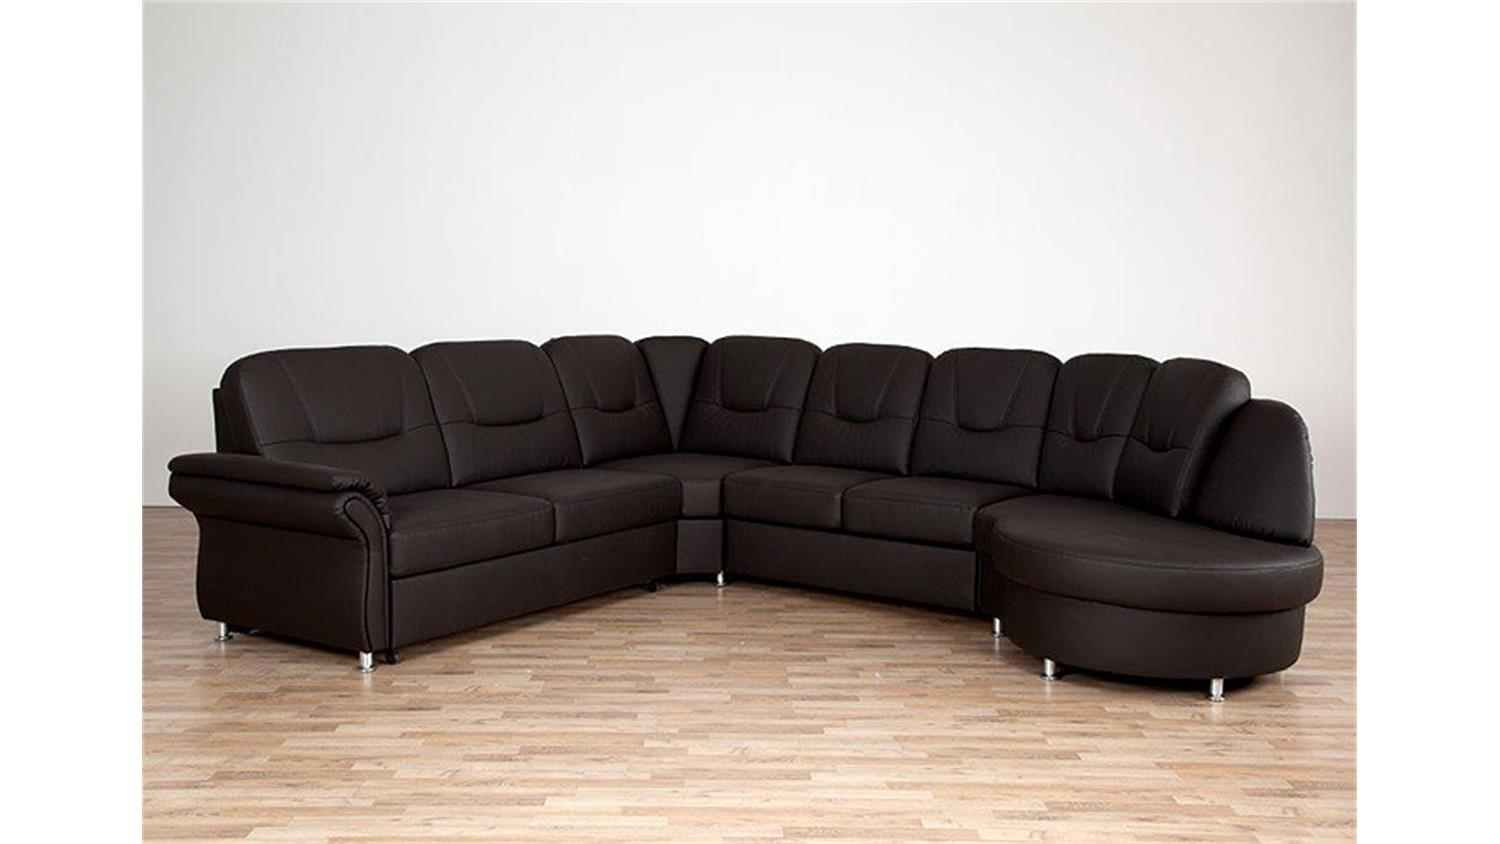 Ecksofa Bettfunktion Chesterfield Ecksofa Leder Mit Bettfunktion Das Beste